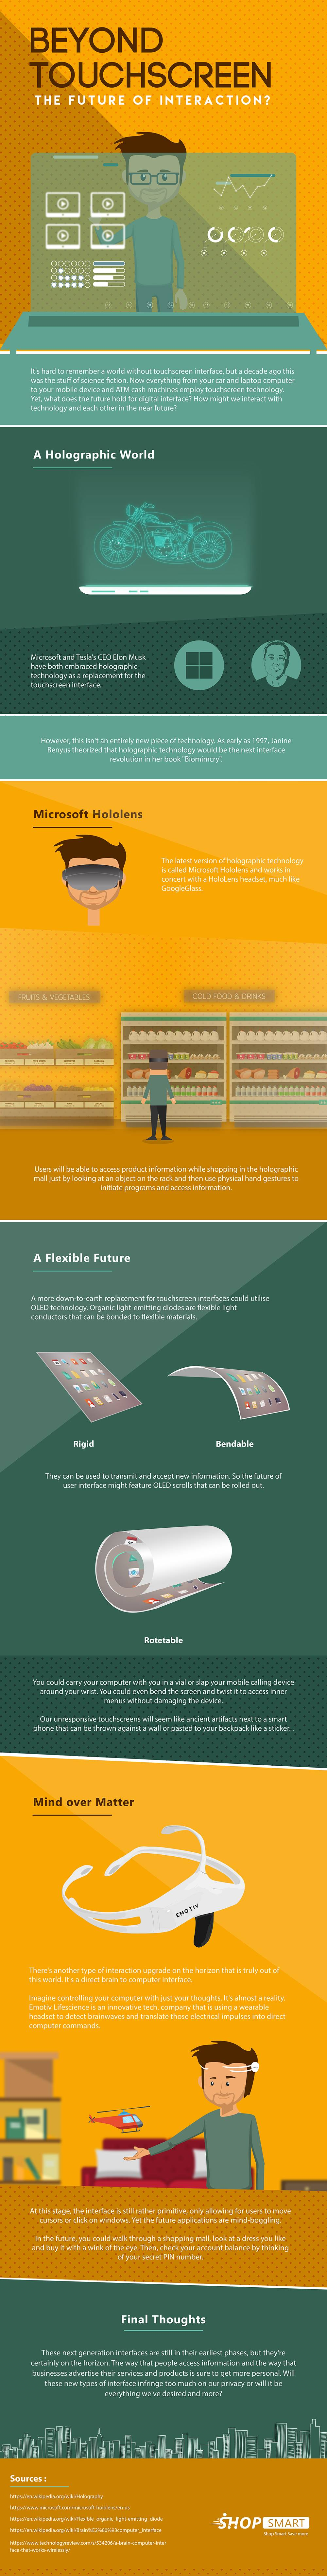 future computer technology infographic